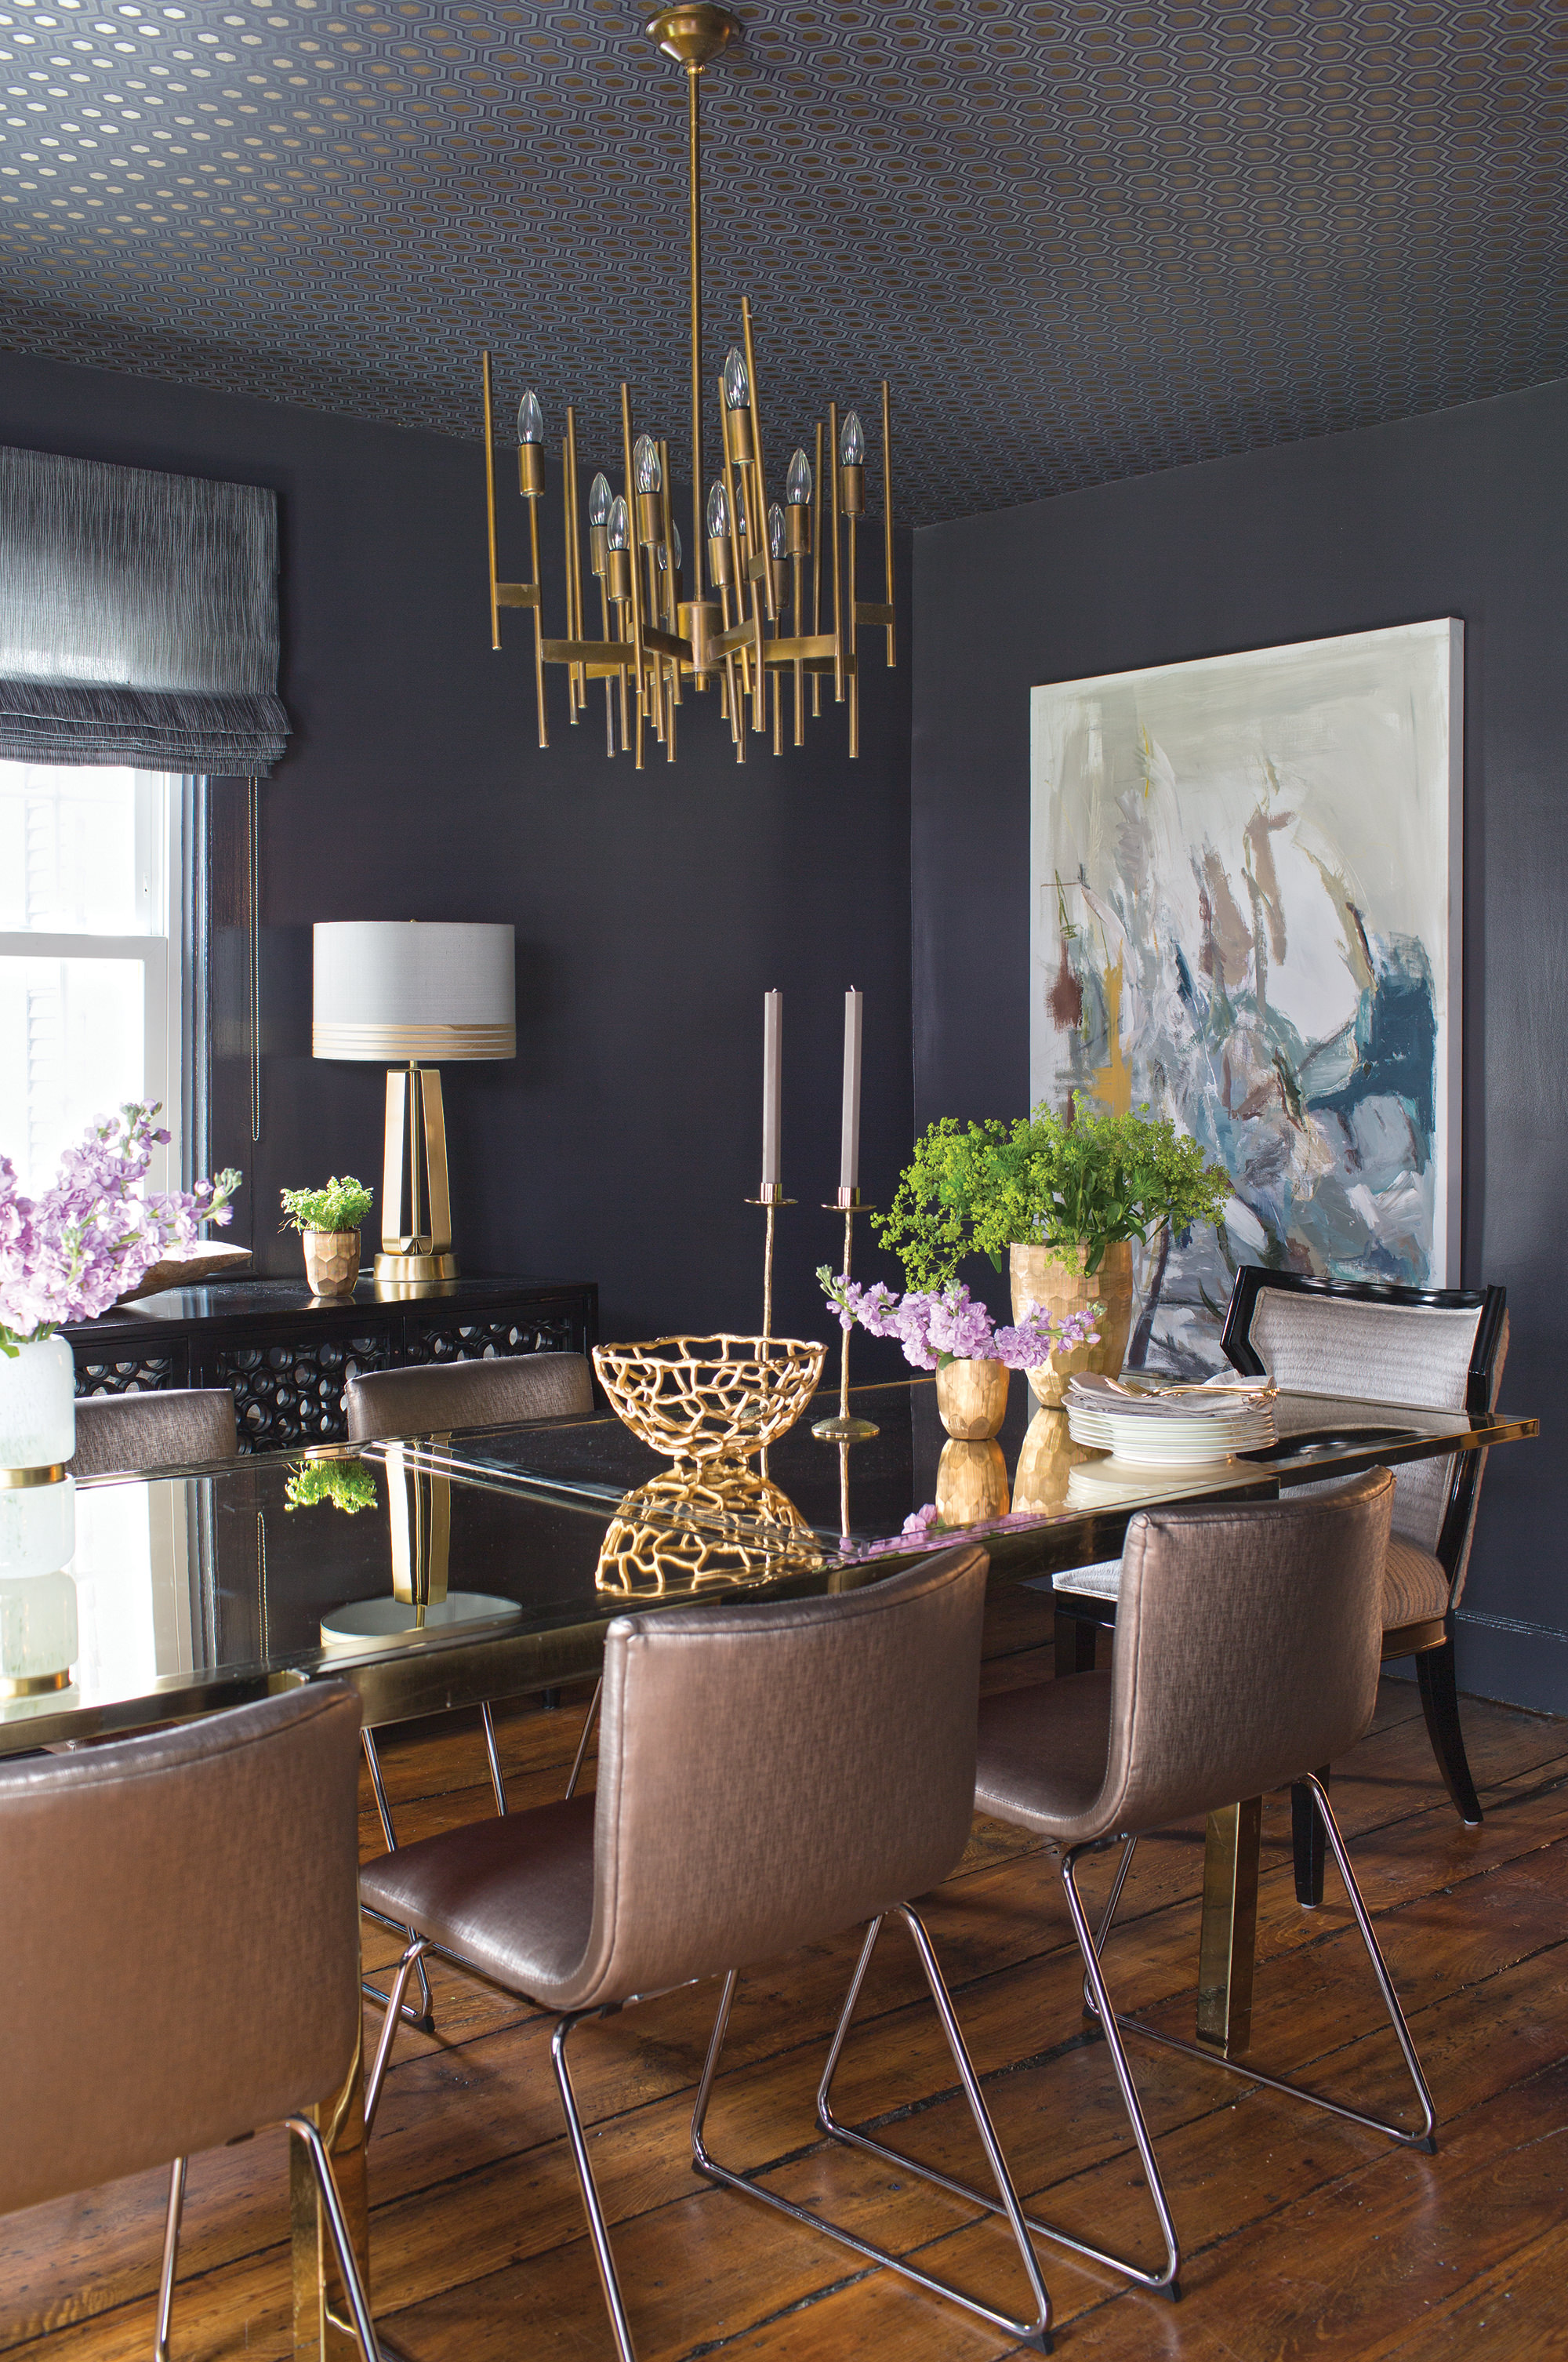 interiors is winning residential county design jill designers stamford an stm interior ct firm pimlico fairfield award